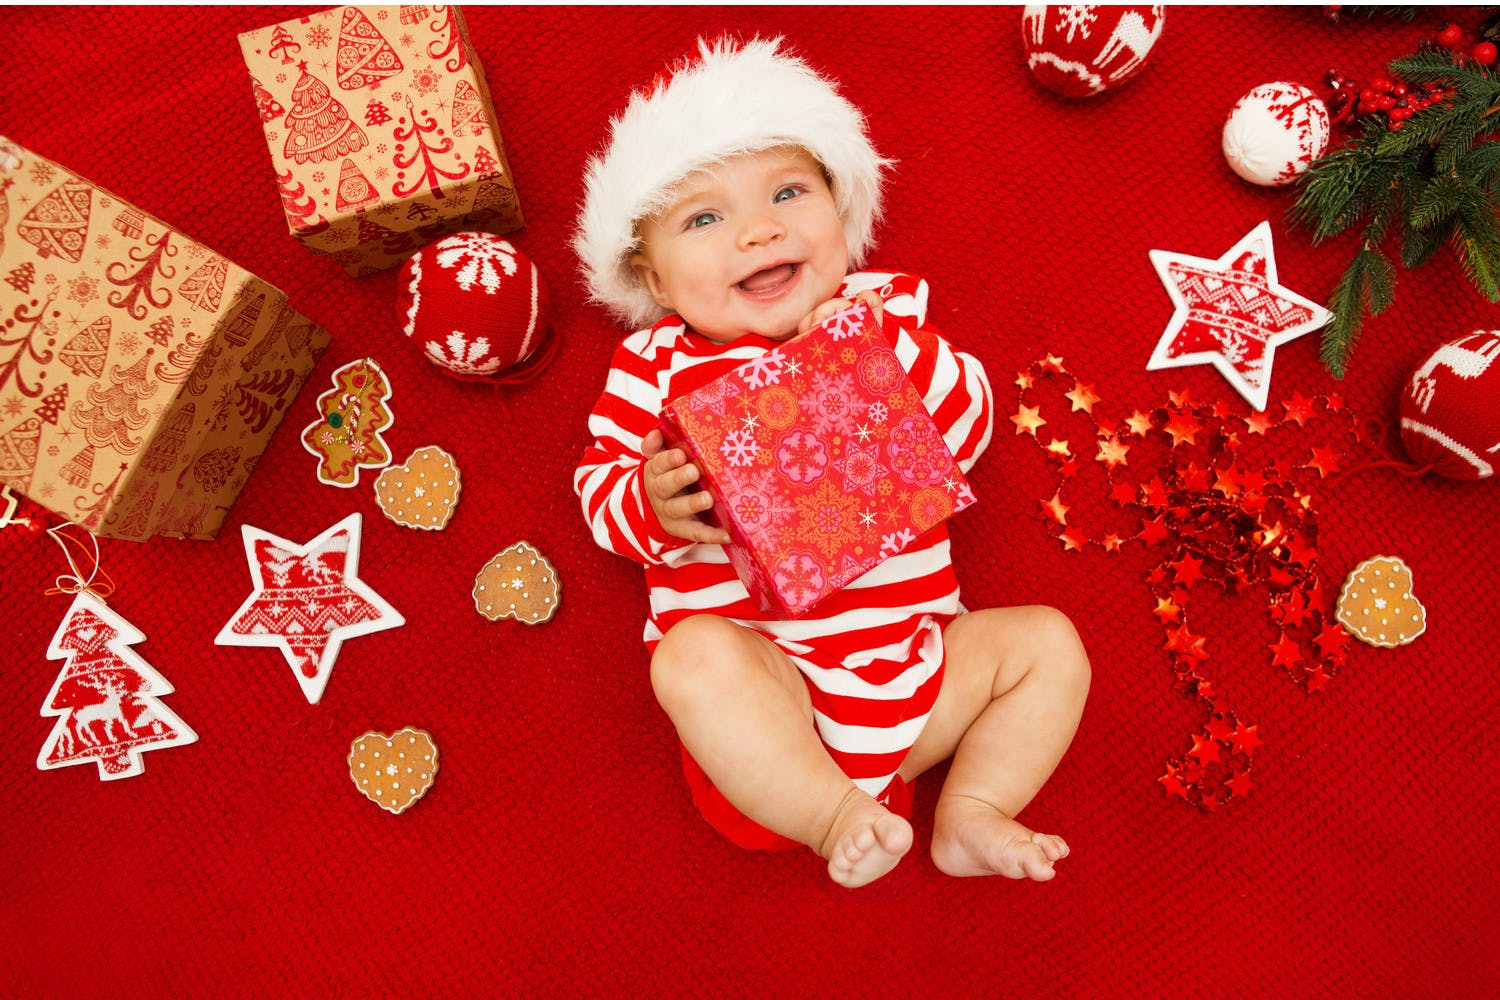 Baby S First Christmas Ideas To Make It Extra Special Netmums